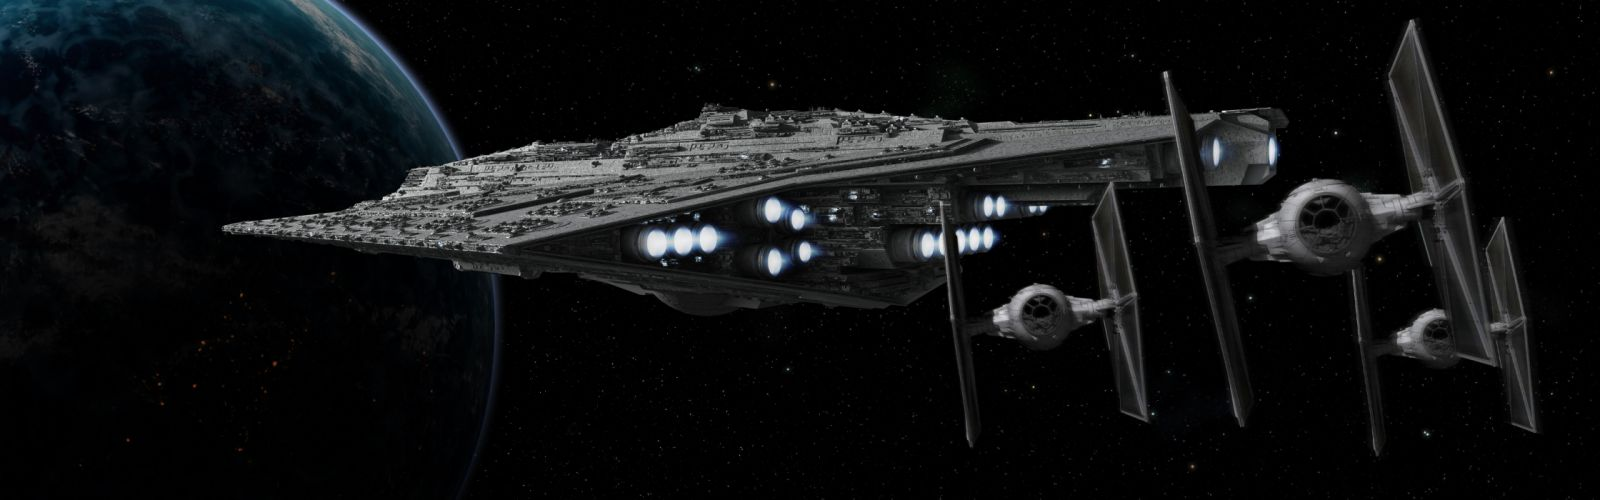 Star Wars outer space spaceships vehicles wallpaper